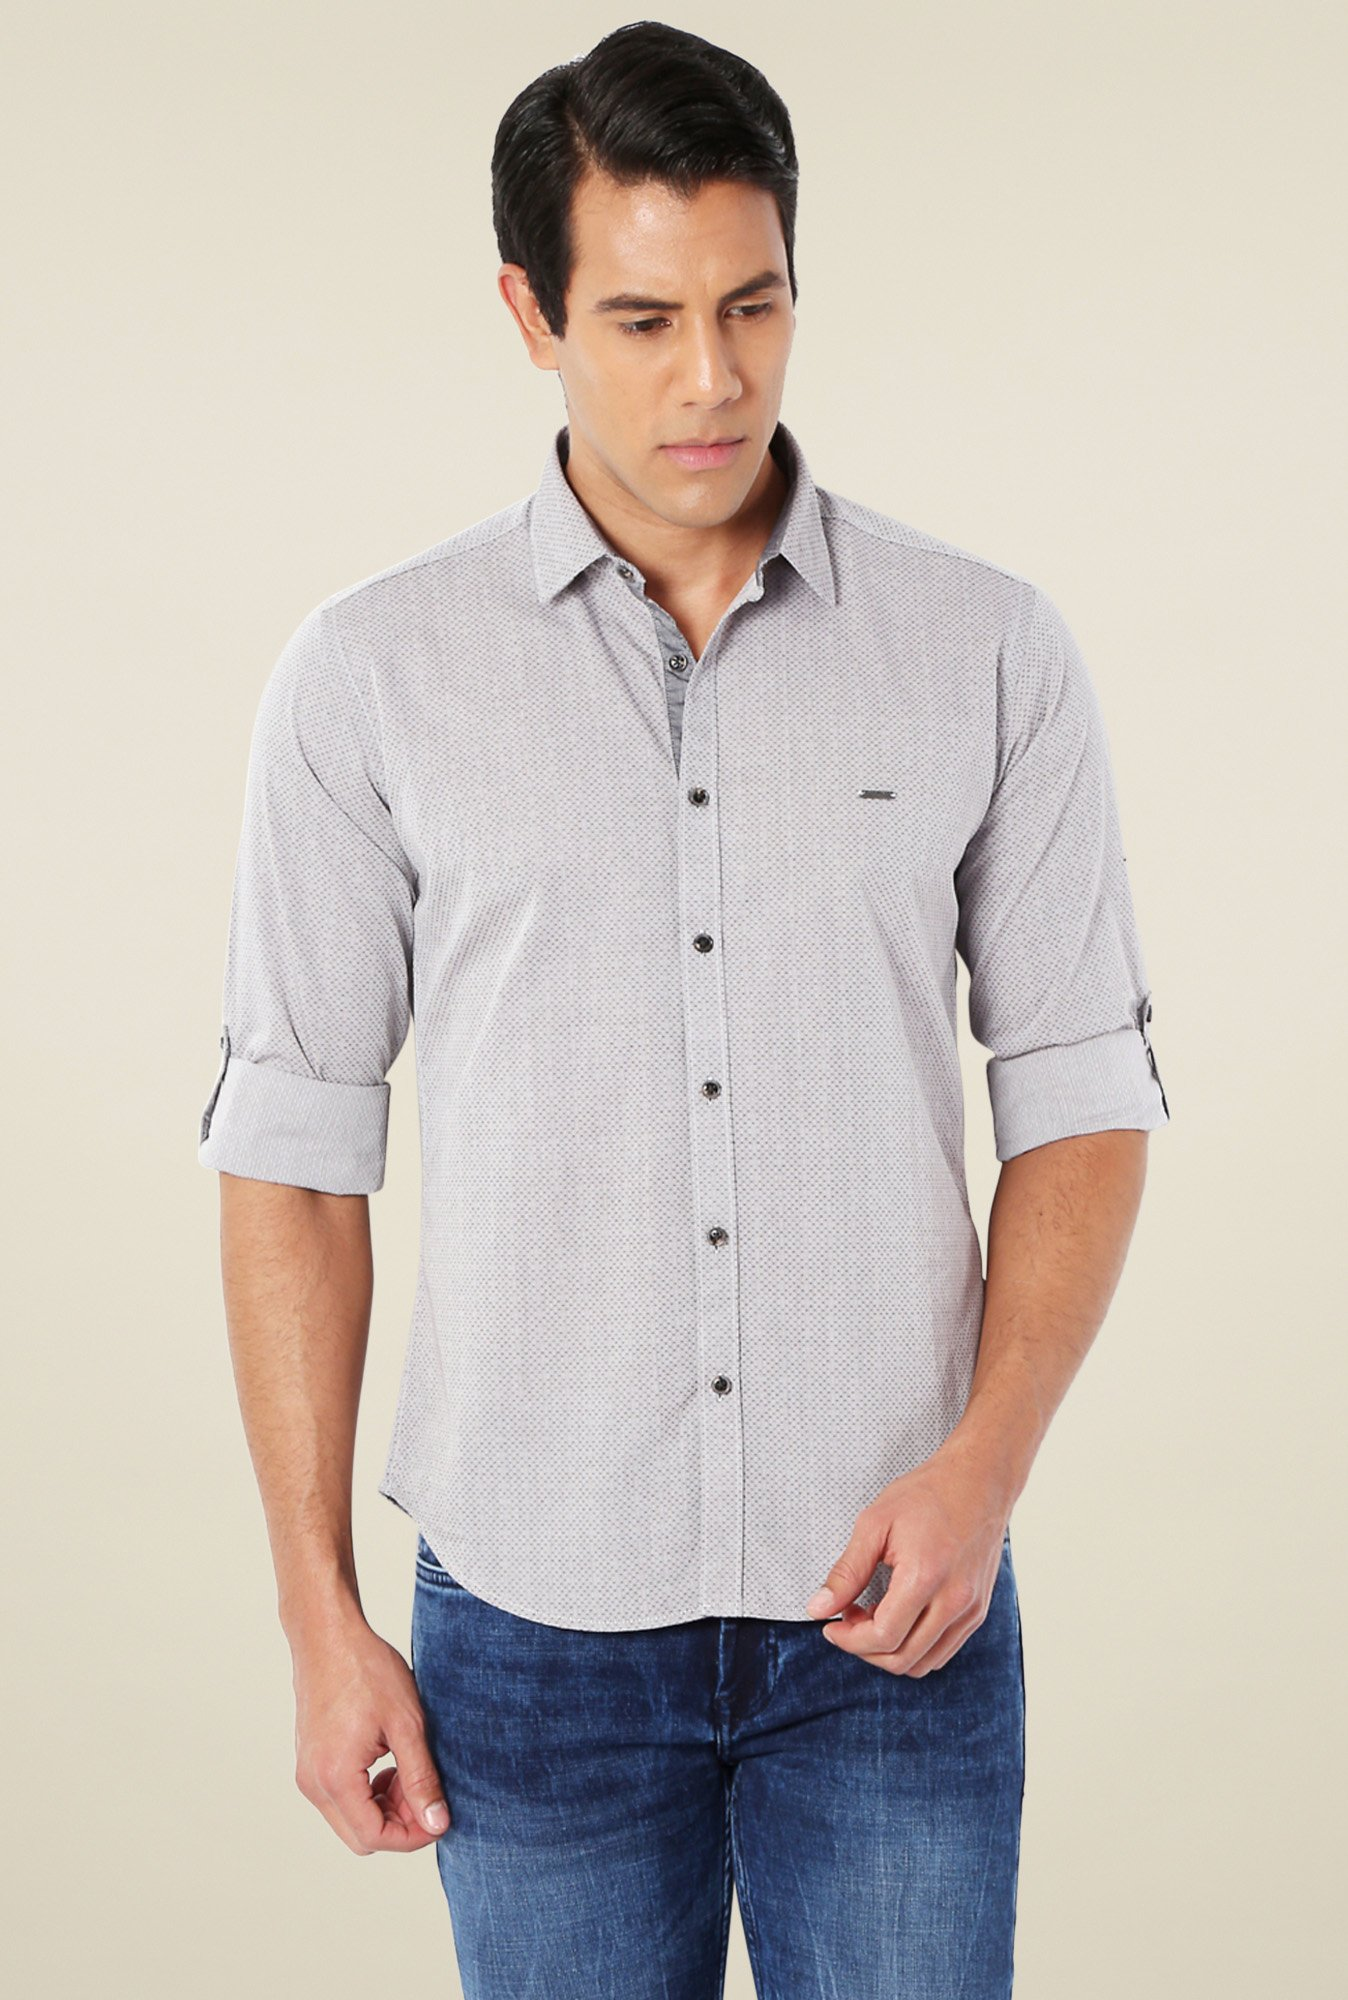 Van Heusen Grey Slim Fit Printed Shirt